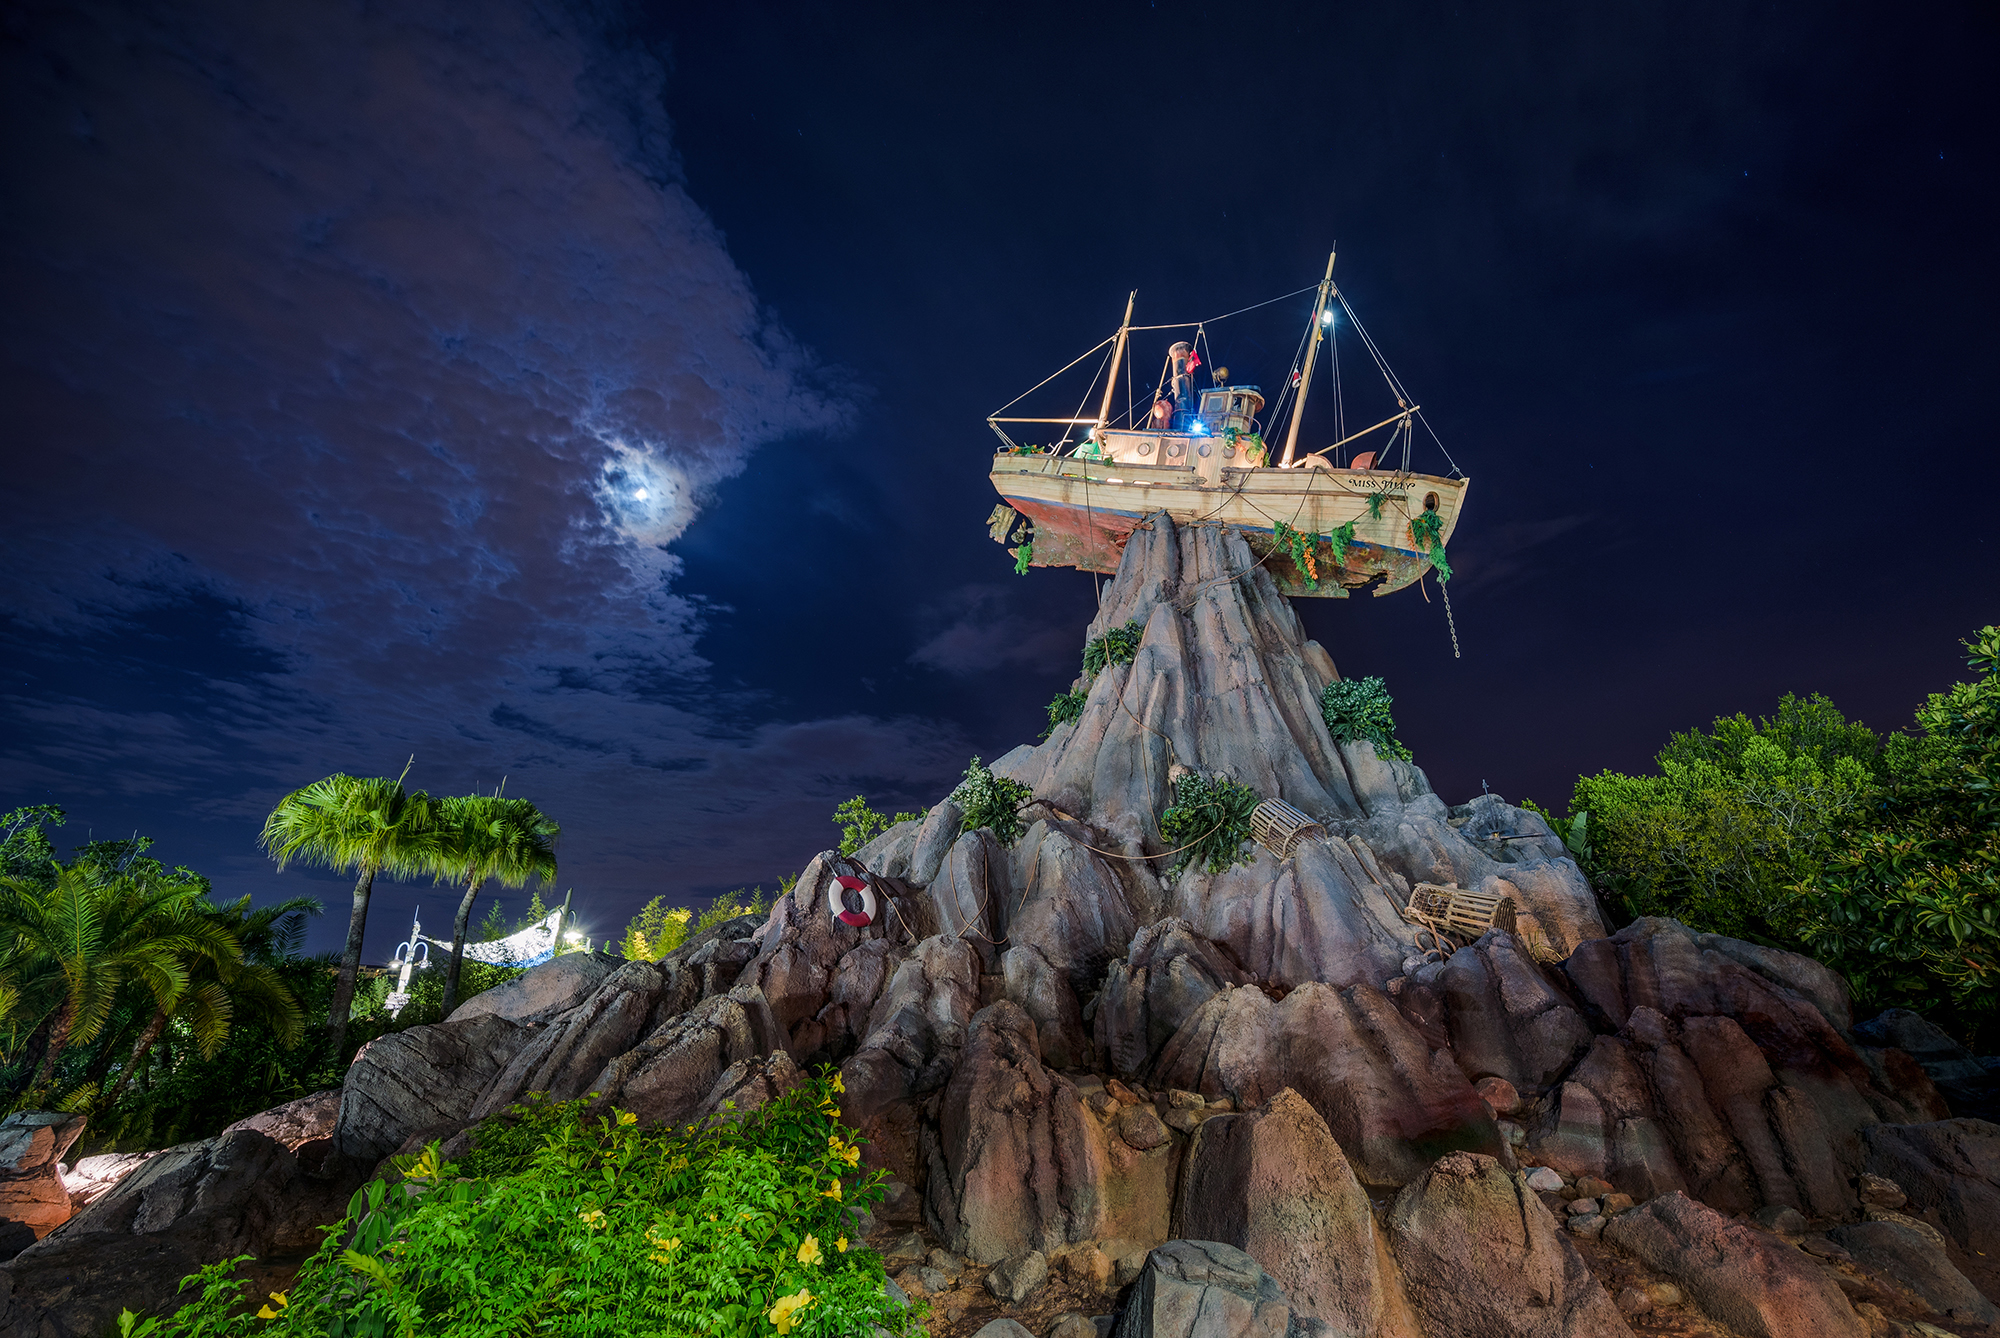 """Slide 9 of 15: LAKE BUENA VISTA, Fla. (March 19, 2018) – Guests can start making plans to join some of their favorite """"Toy Story"""" characters during Disney H2O Glow Nights, the splashy new, nighttime pool party coming to Disney's Typhoon Lagoon Water Park this summer.  Tickets are on sale now for this after-dark event, which is part of an Incredible Summer coming to Walt Disney World Resort. Tickets are $55 plus tax for guests ages 10 and up, and $50 plus tax for children ages 3-9.  On Thursday and Saturday evenings, from June 21 to August 11, Rex and his """"Toy Story"""" pals will transform Typhoon Lagoon like never before by throwing a glow party in the surf pool and throughout the park. Rex, a.k.a. Partysaurus Rex, will serve as host and invite guests of all ages to join the festivities. All attractions will be open for guest enjoyment and, as part of the fun, there will be special food and beverage offerings, """"Toy Story"""" character greetings, a DJ dance party on the beach and more. Disney H2O Glow Nights also will feature The Wharf, a unique, adults-only area with a private bar, entertainment and additional seating. To purchase tickets and learn more about Disney H2O Glow Nights, call (407) 939-1872."""